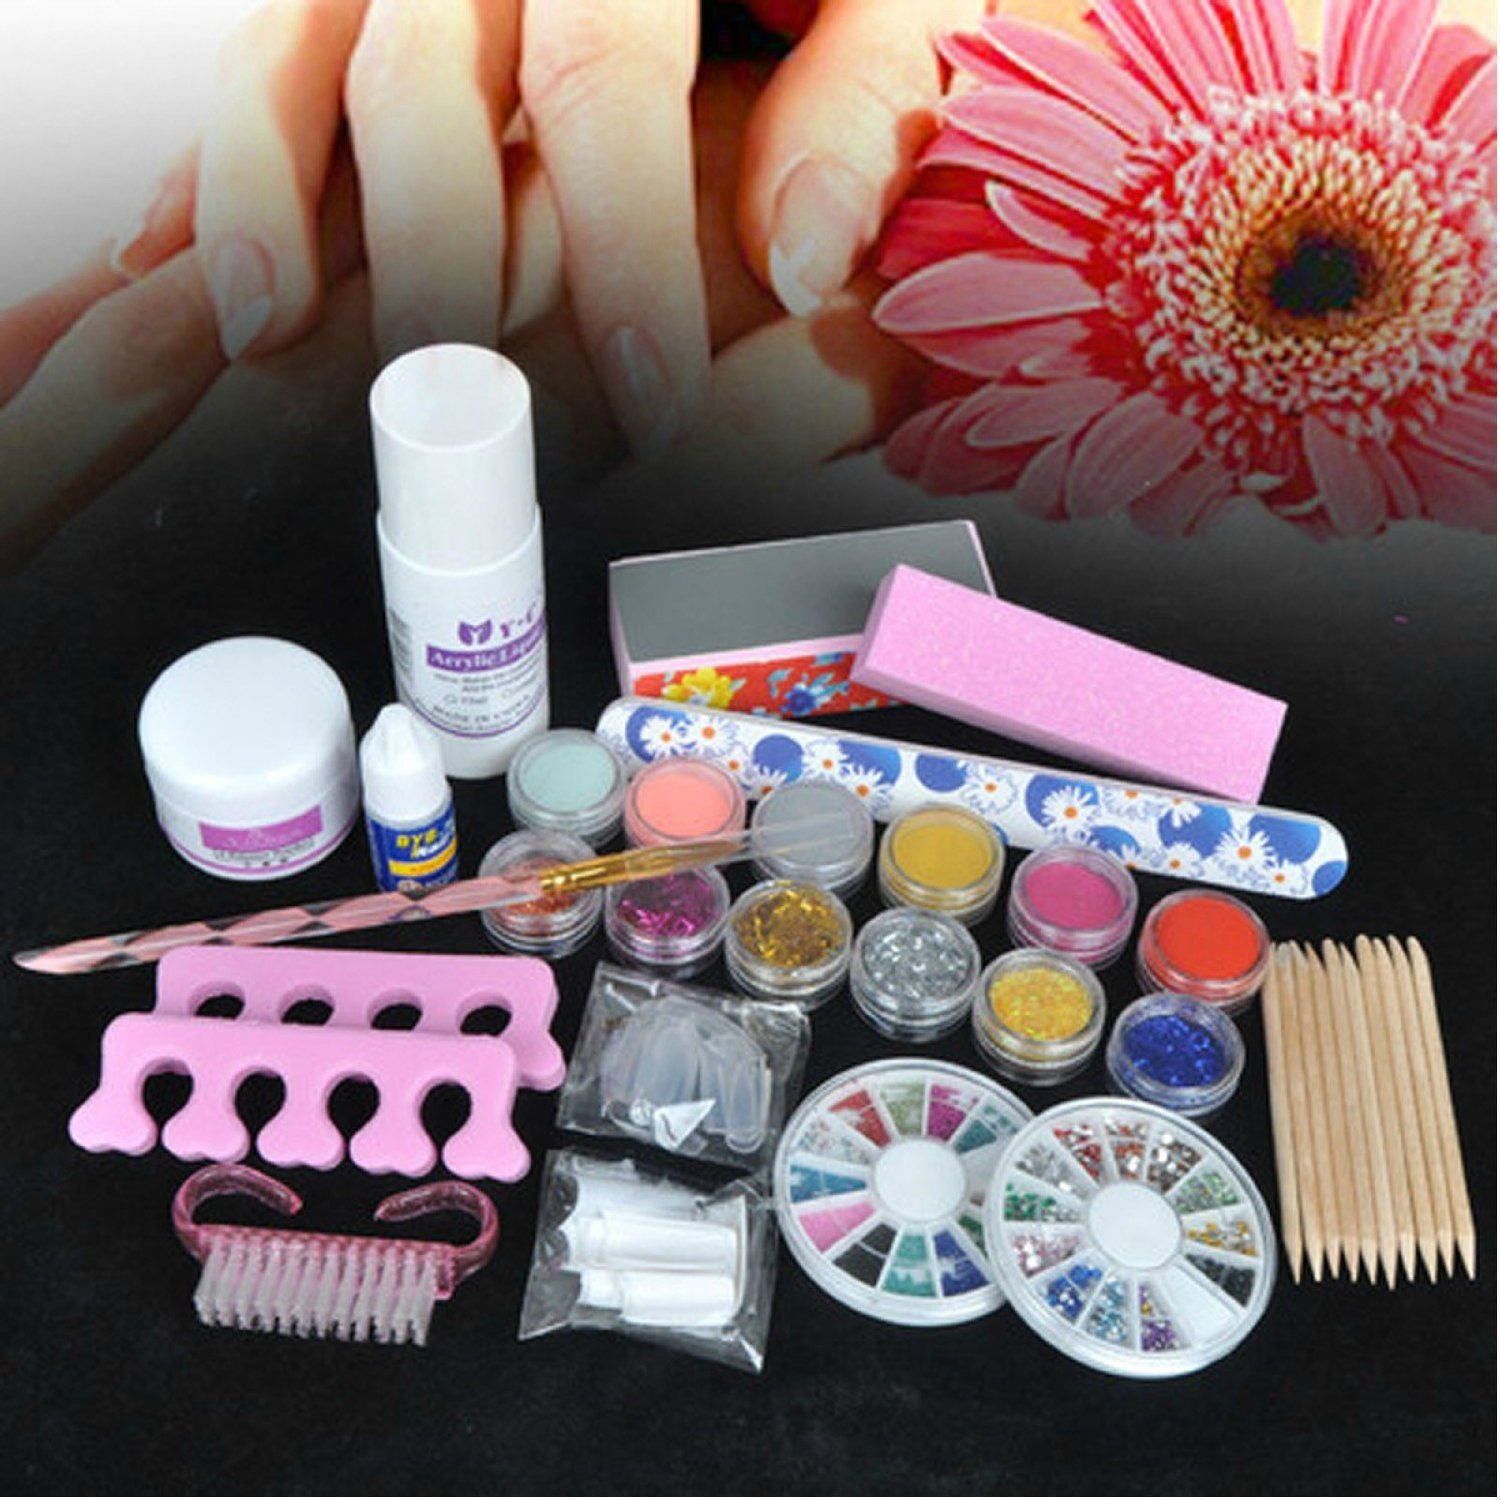 Amazon 350buy basic acrylic 6 powder liquid kits nail art tip amazon 350buy basic acrylic 6 powder liquid kits nail art tip kit 6 glitter tool beauty prinsesfo Images